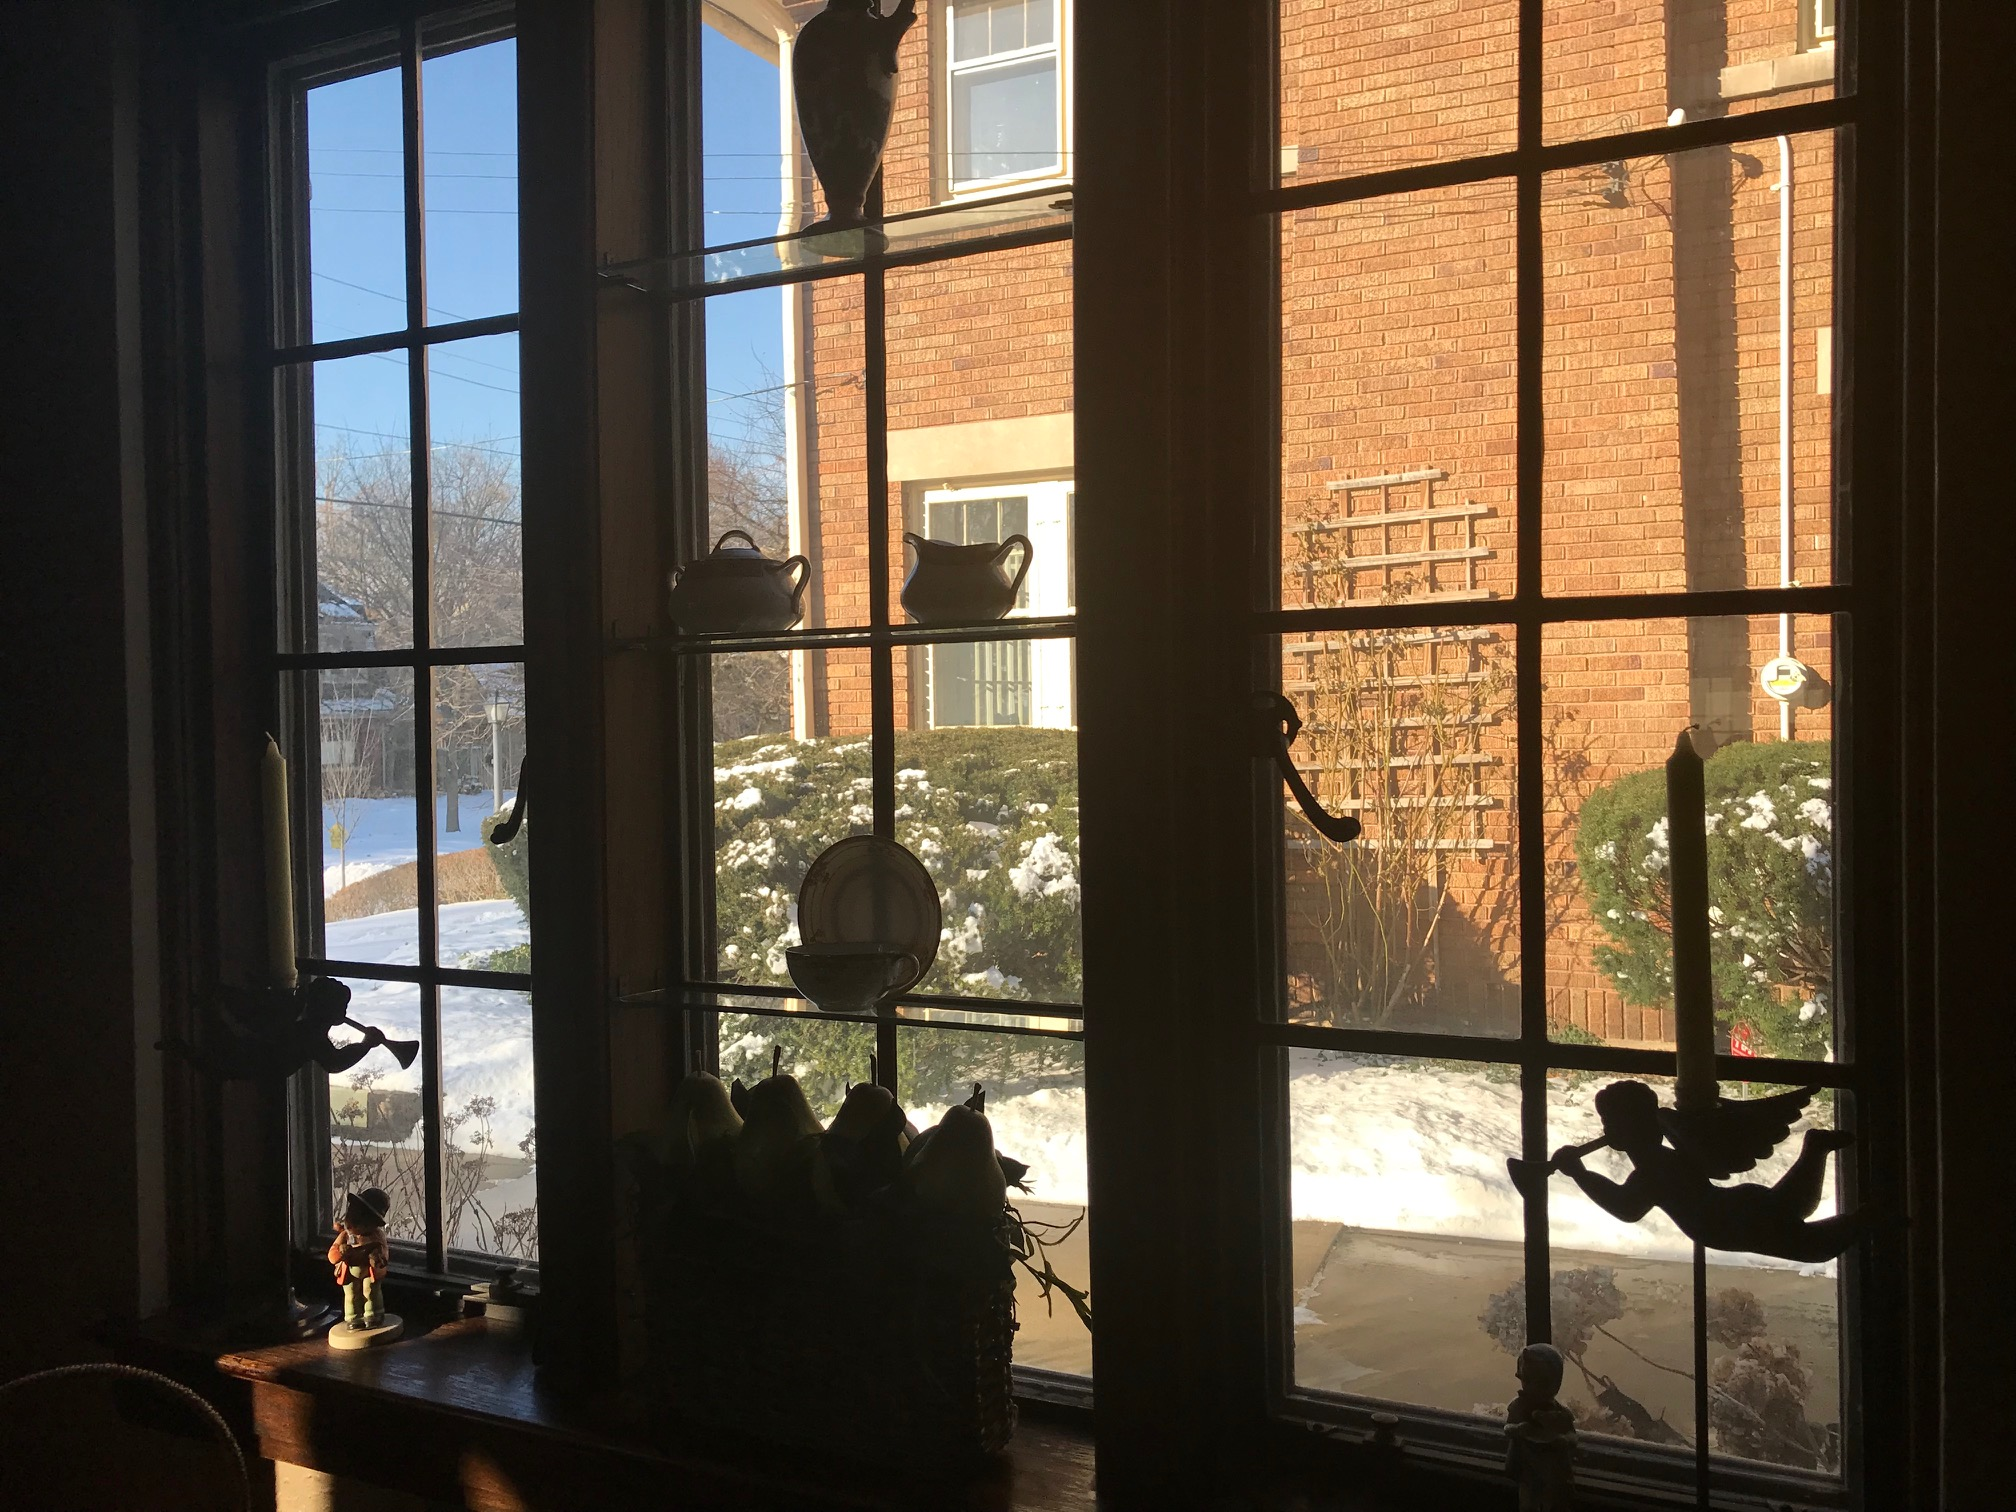 VIEWING THE NEIGHBORHOOD THROUGH THE DINING ROOM